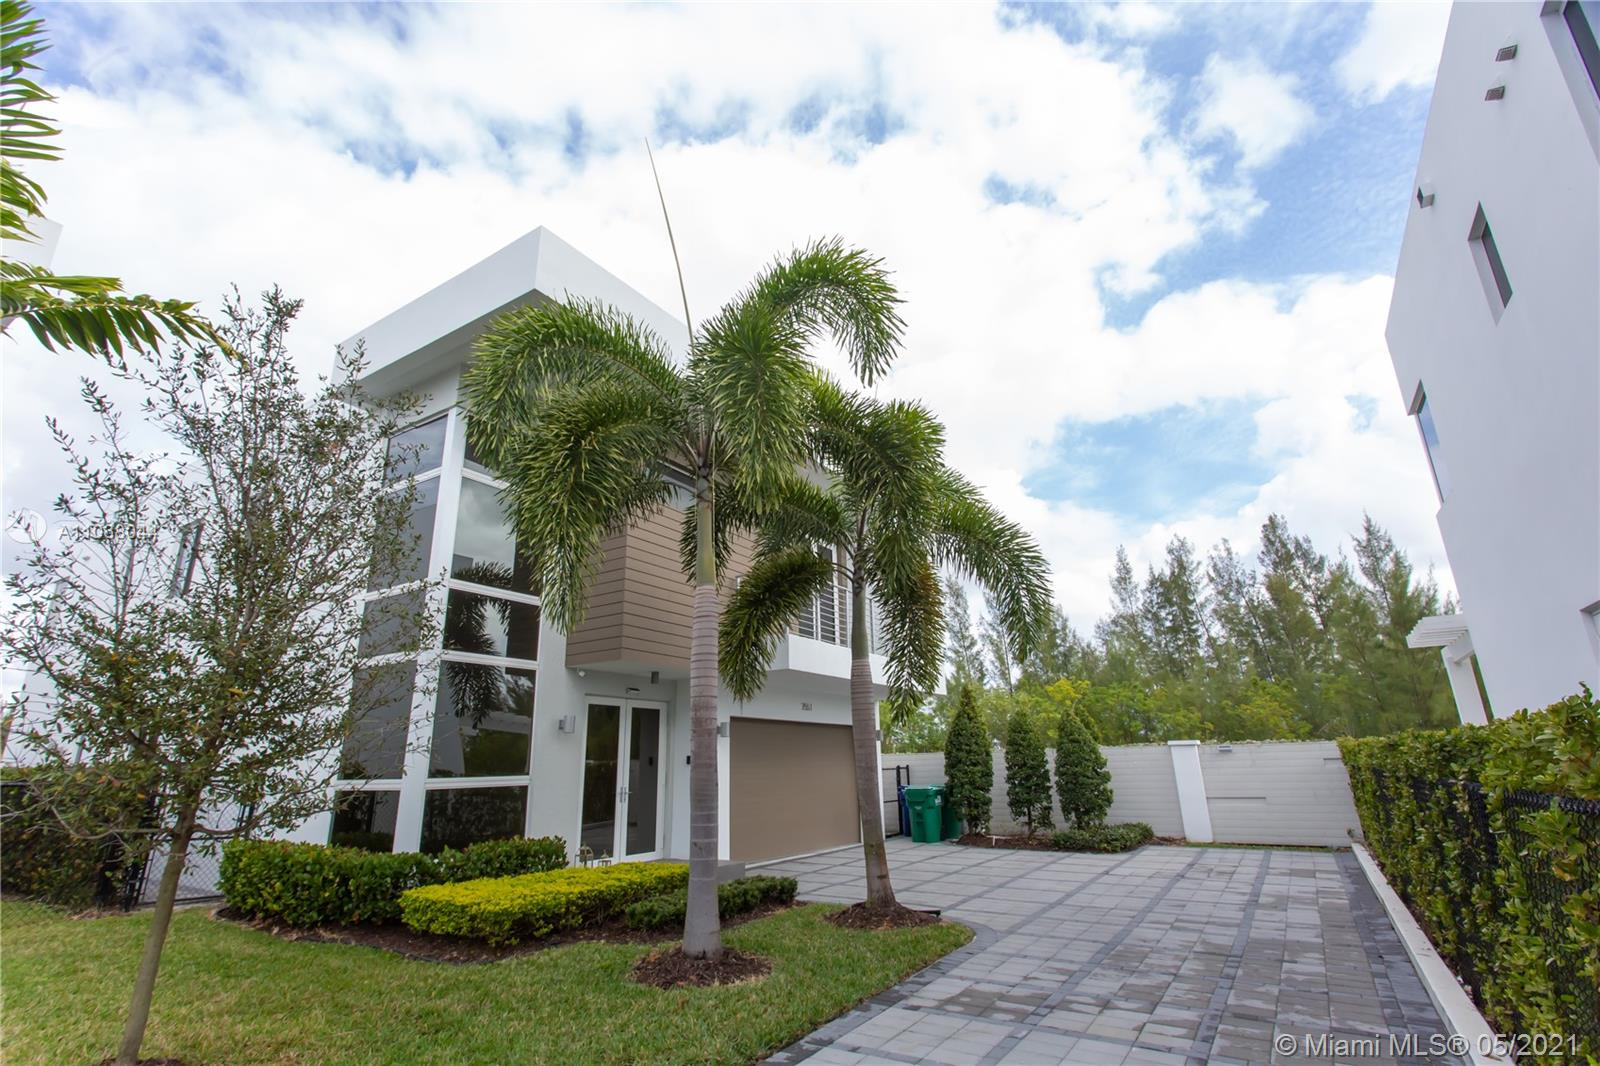 Doral Commons Residential - 7551 NW 97th Ct, Doral, FL 33178